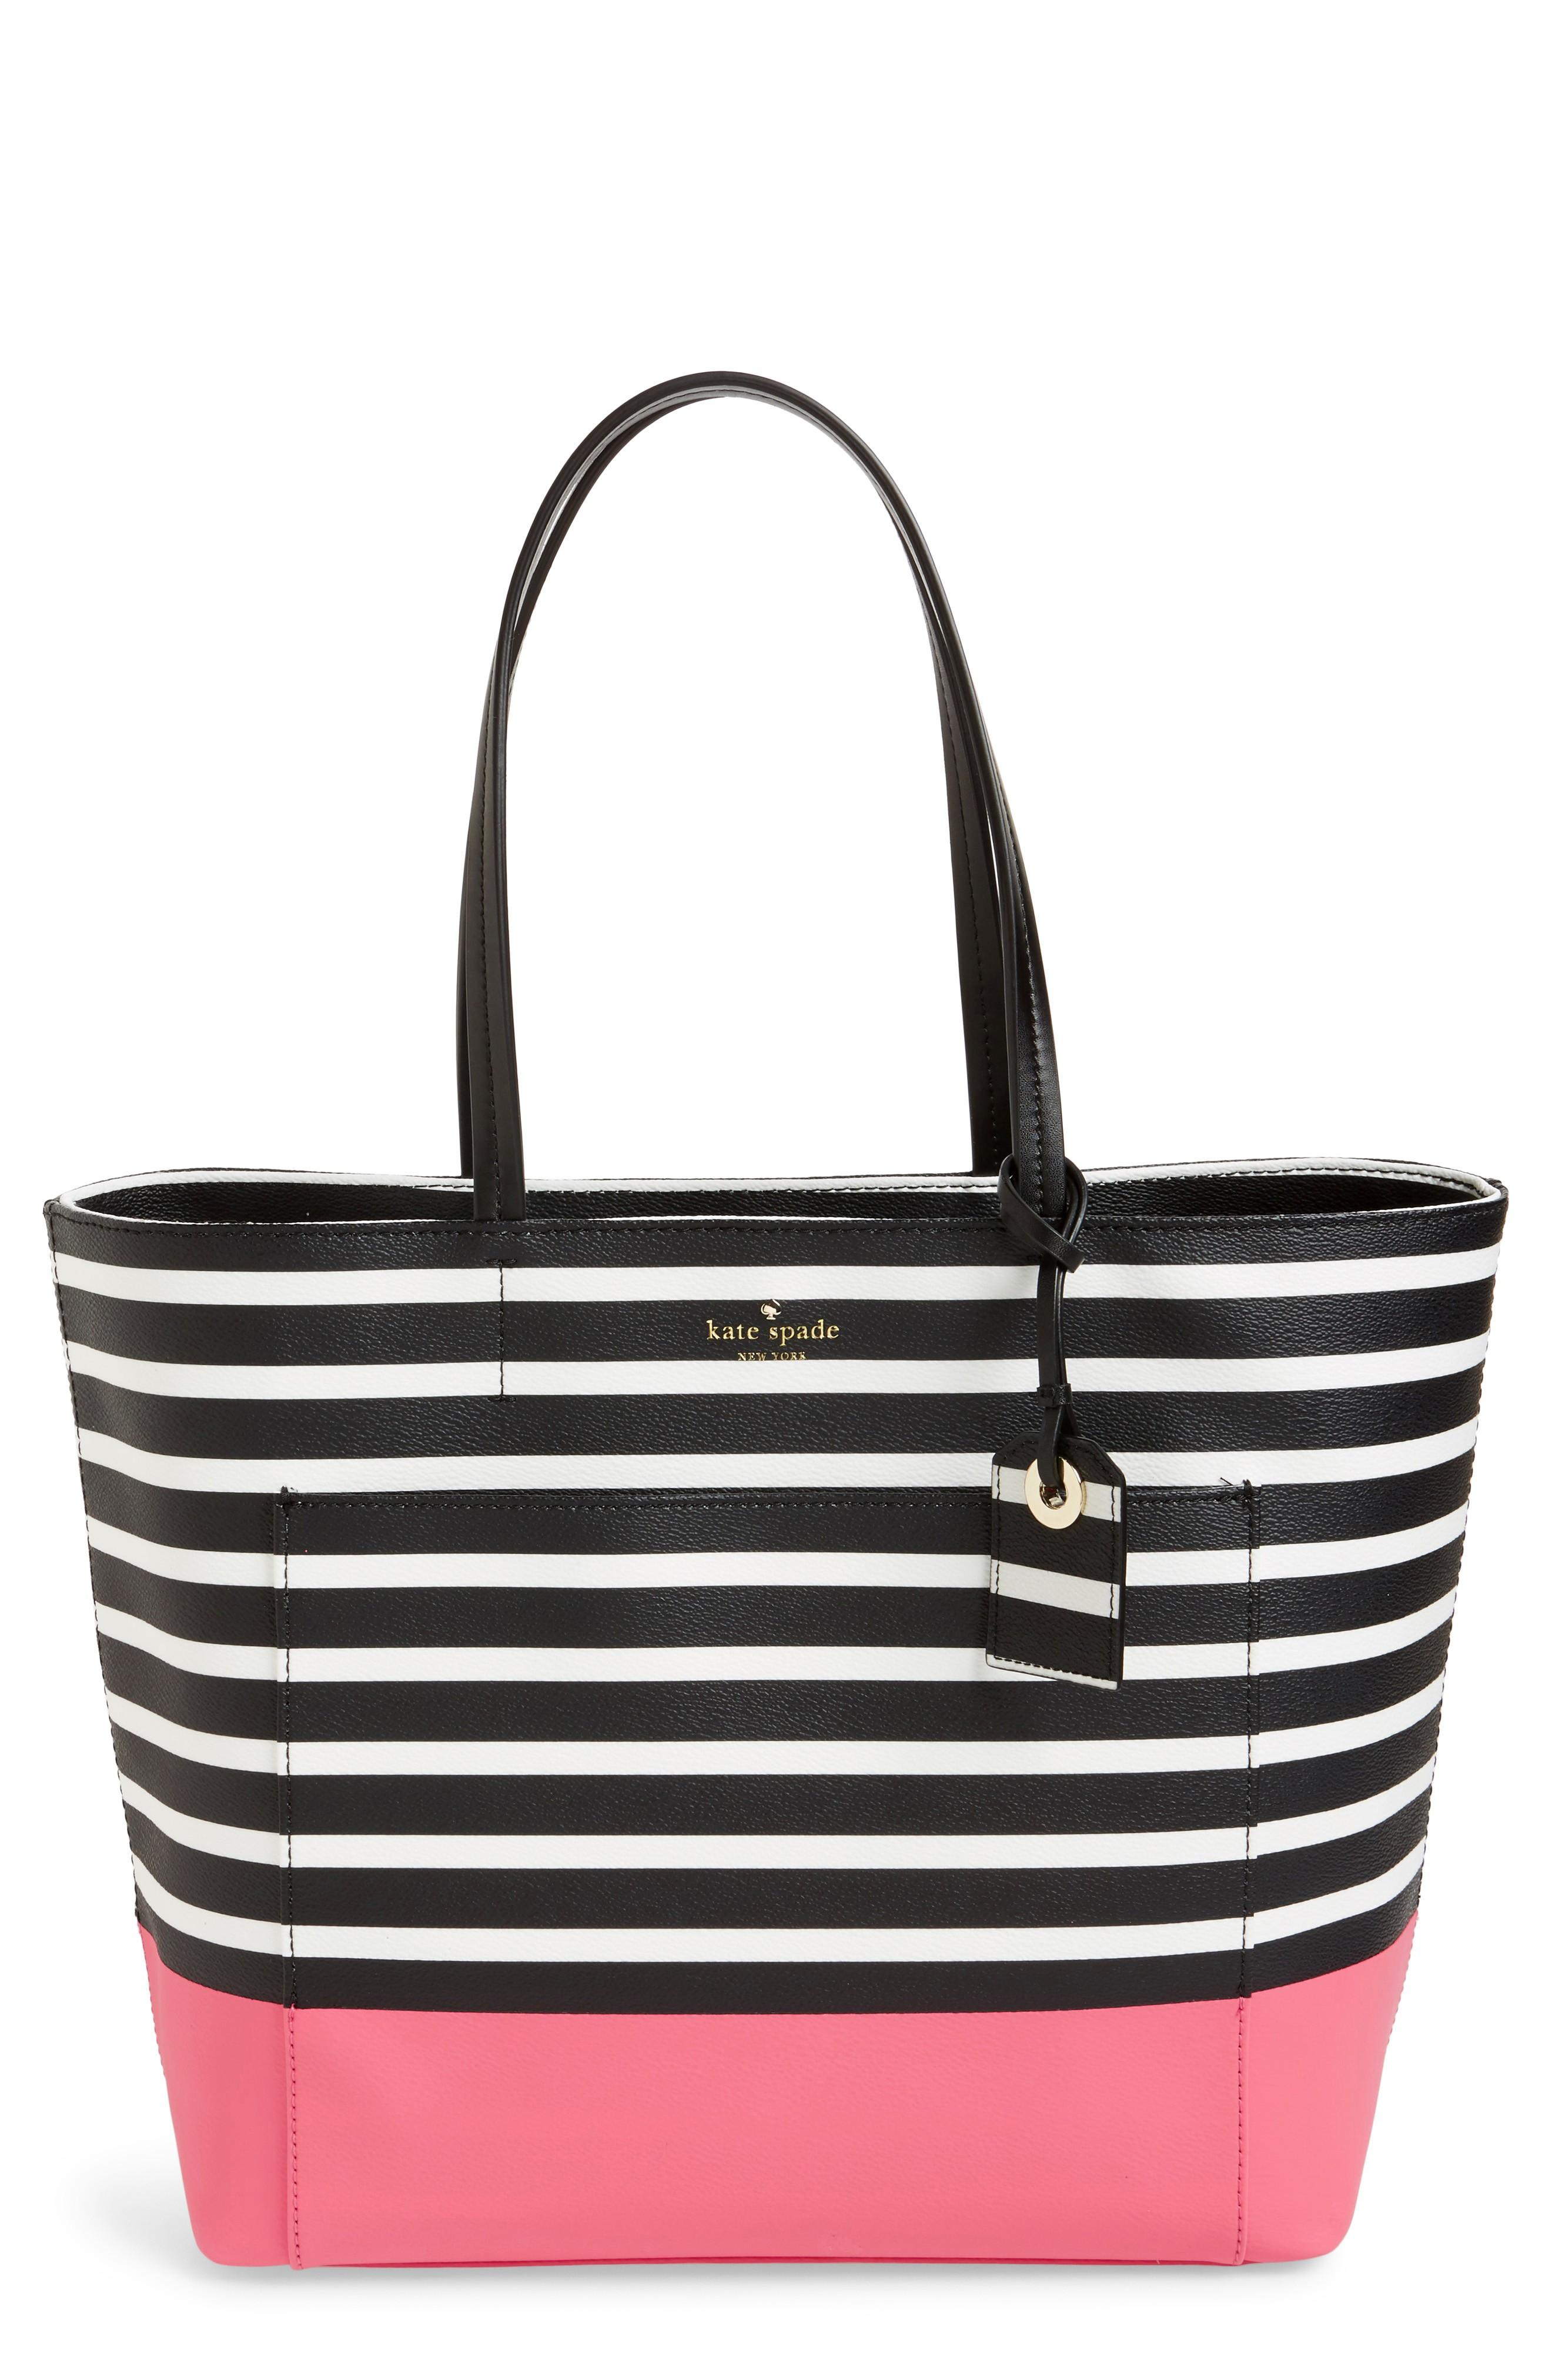 ccb075eb8 Kate Spade Riley Two-Toned Striped Tote Bag, Peaches Herb In Peach Sherbet